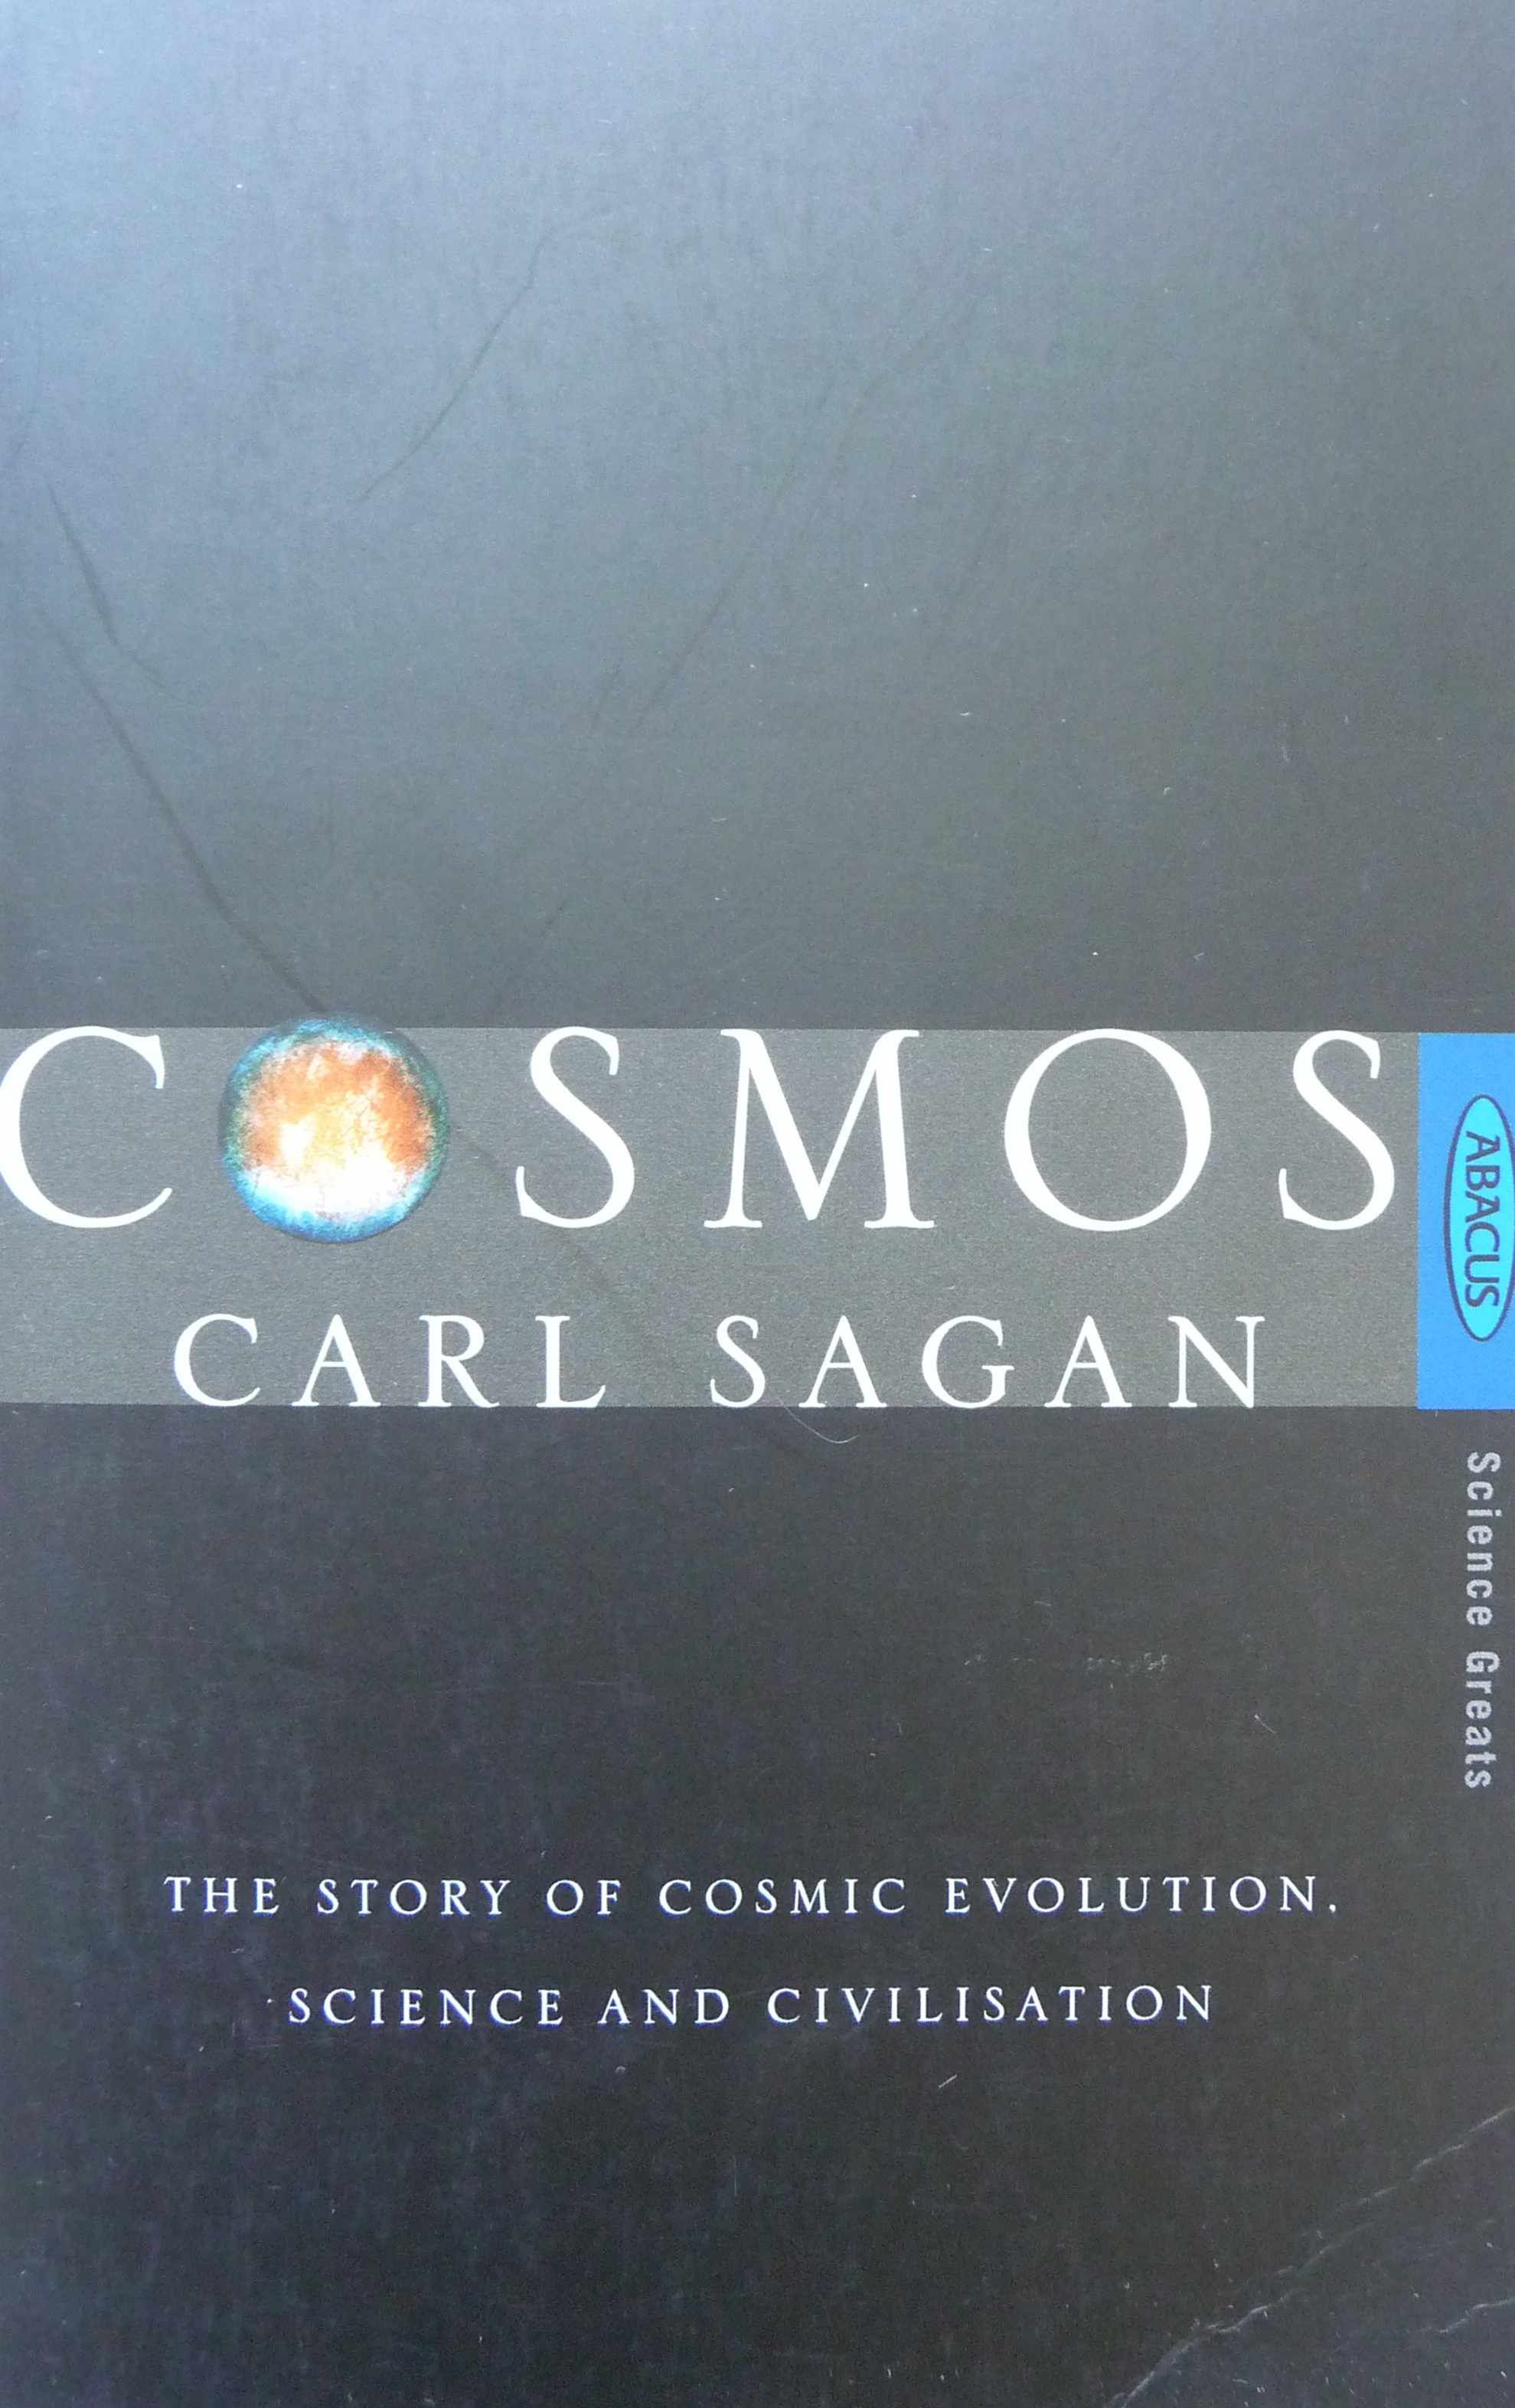 Cosmos Traces The Origins Of Knowledge And The Scientific Method Mixing Science And Philosophy And Speculates To Future Of Science Scientific Method Science